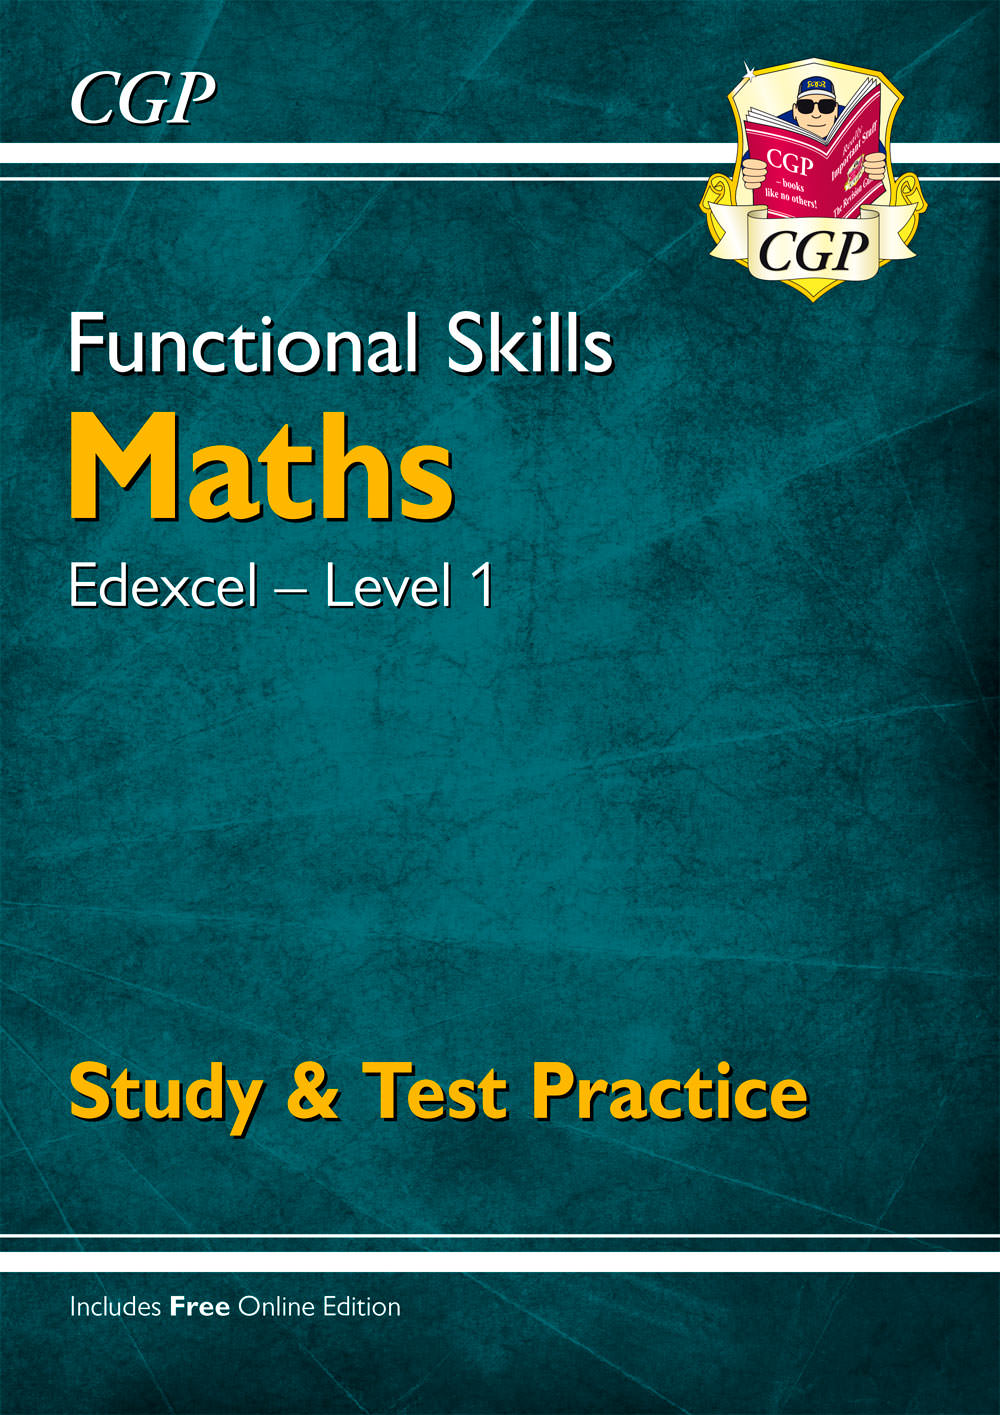 M1ESRA1 - New Functional Skills Maths: Edexcel Level 1 - Study & Test Practice (for 2019 & beyond)